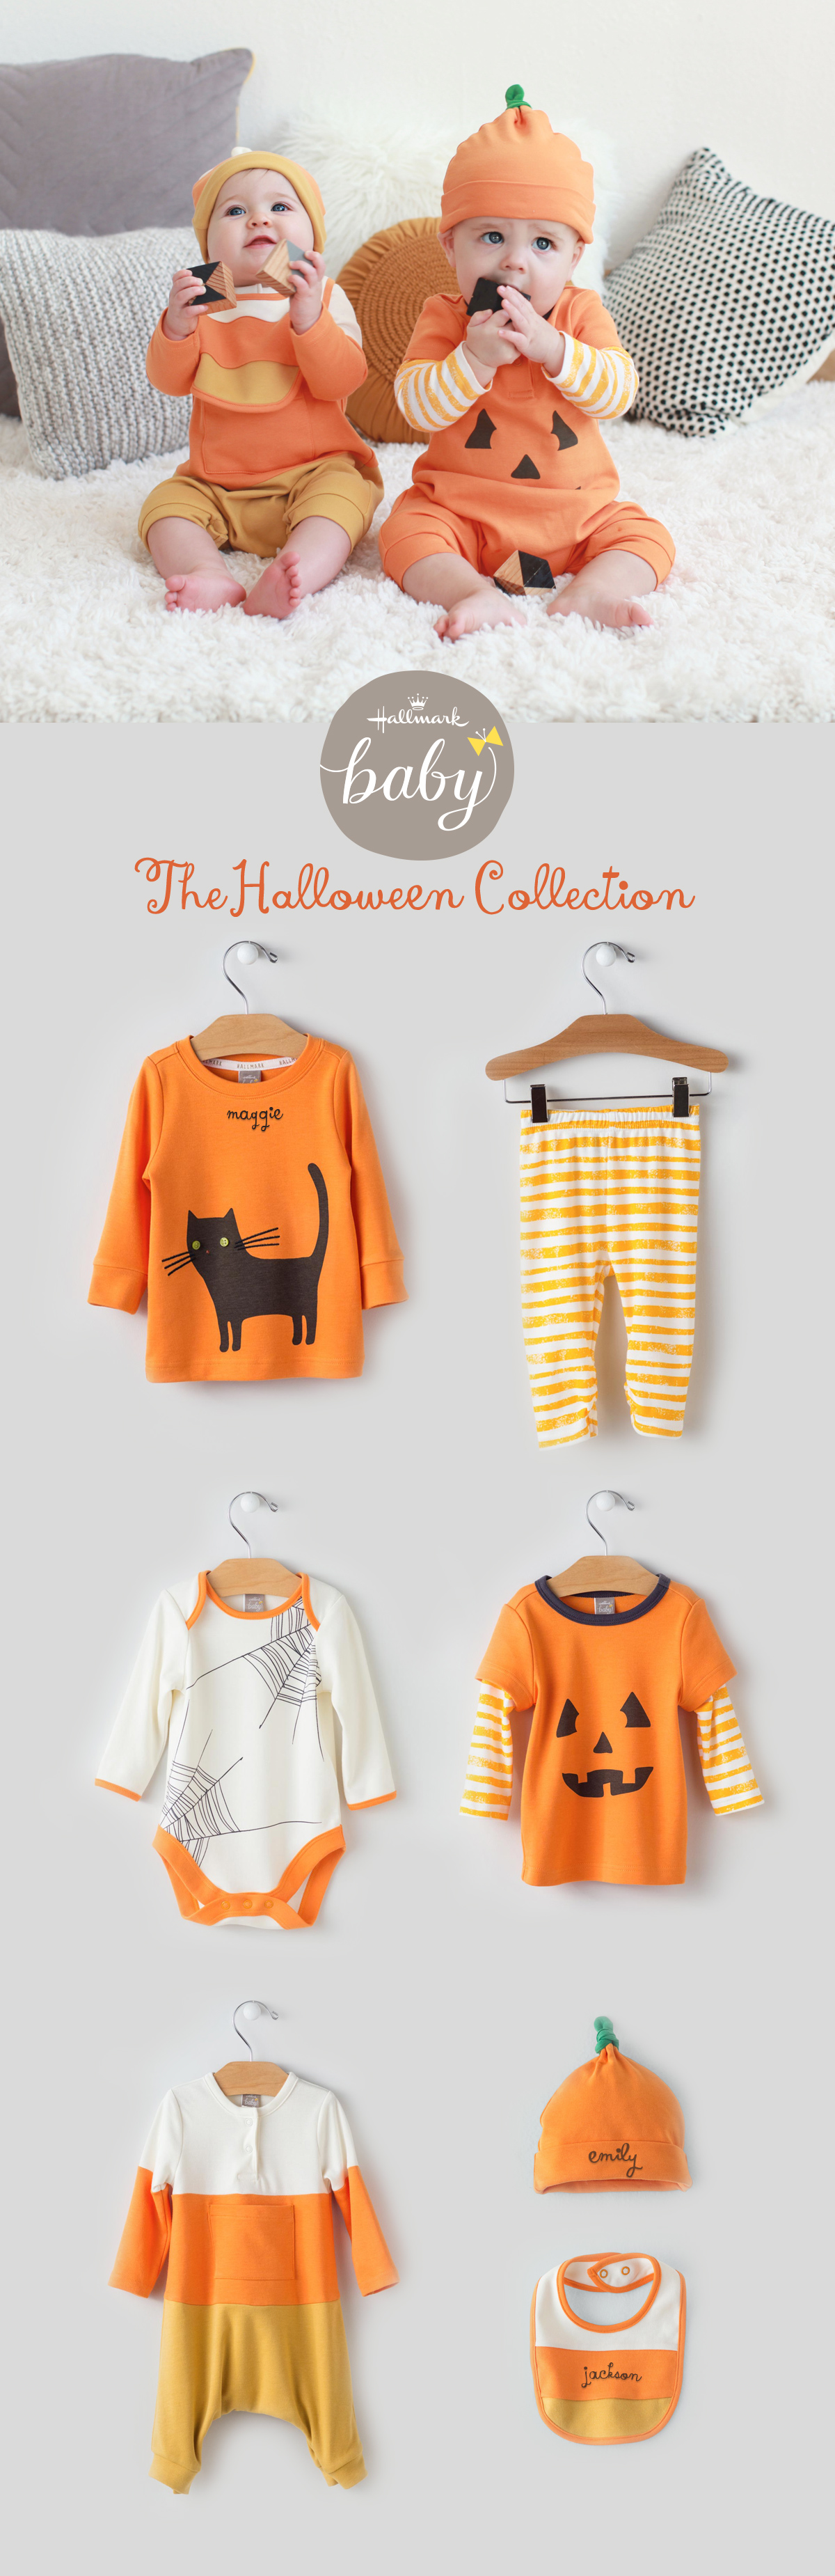 We've got so many sweet treats for Halloween littles this year with lots you can personalize ...